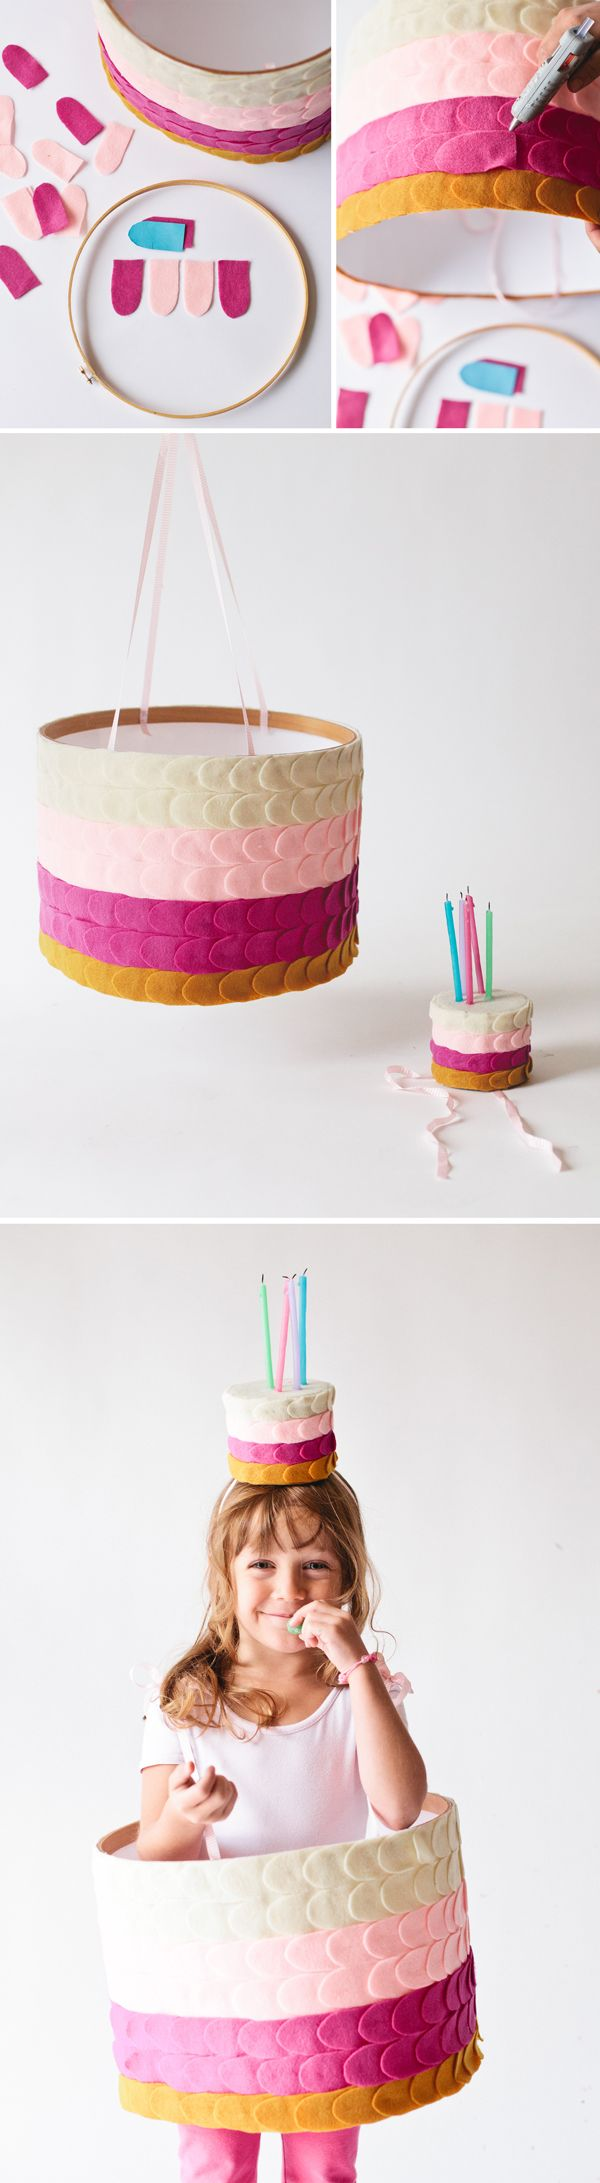 Handmade Birthday Cake Costume from @Victoria Hudgins | A Subtle Revelry